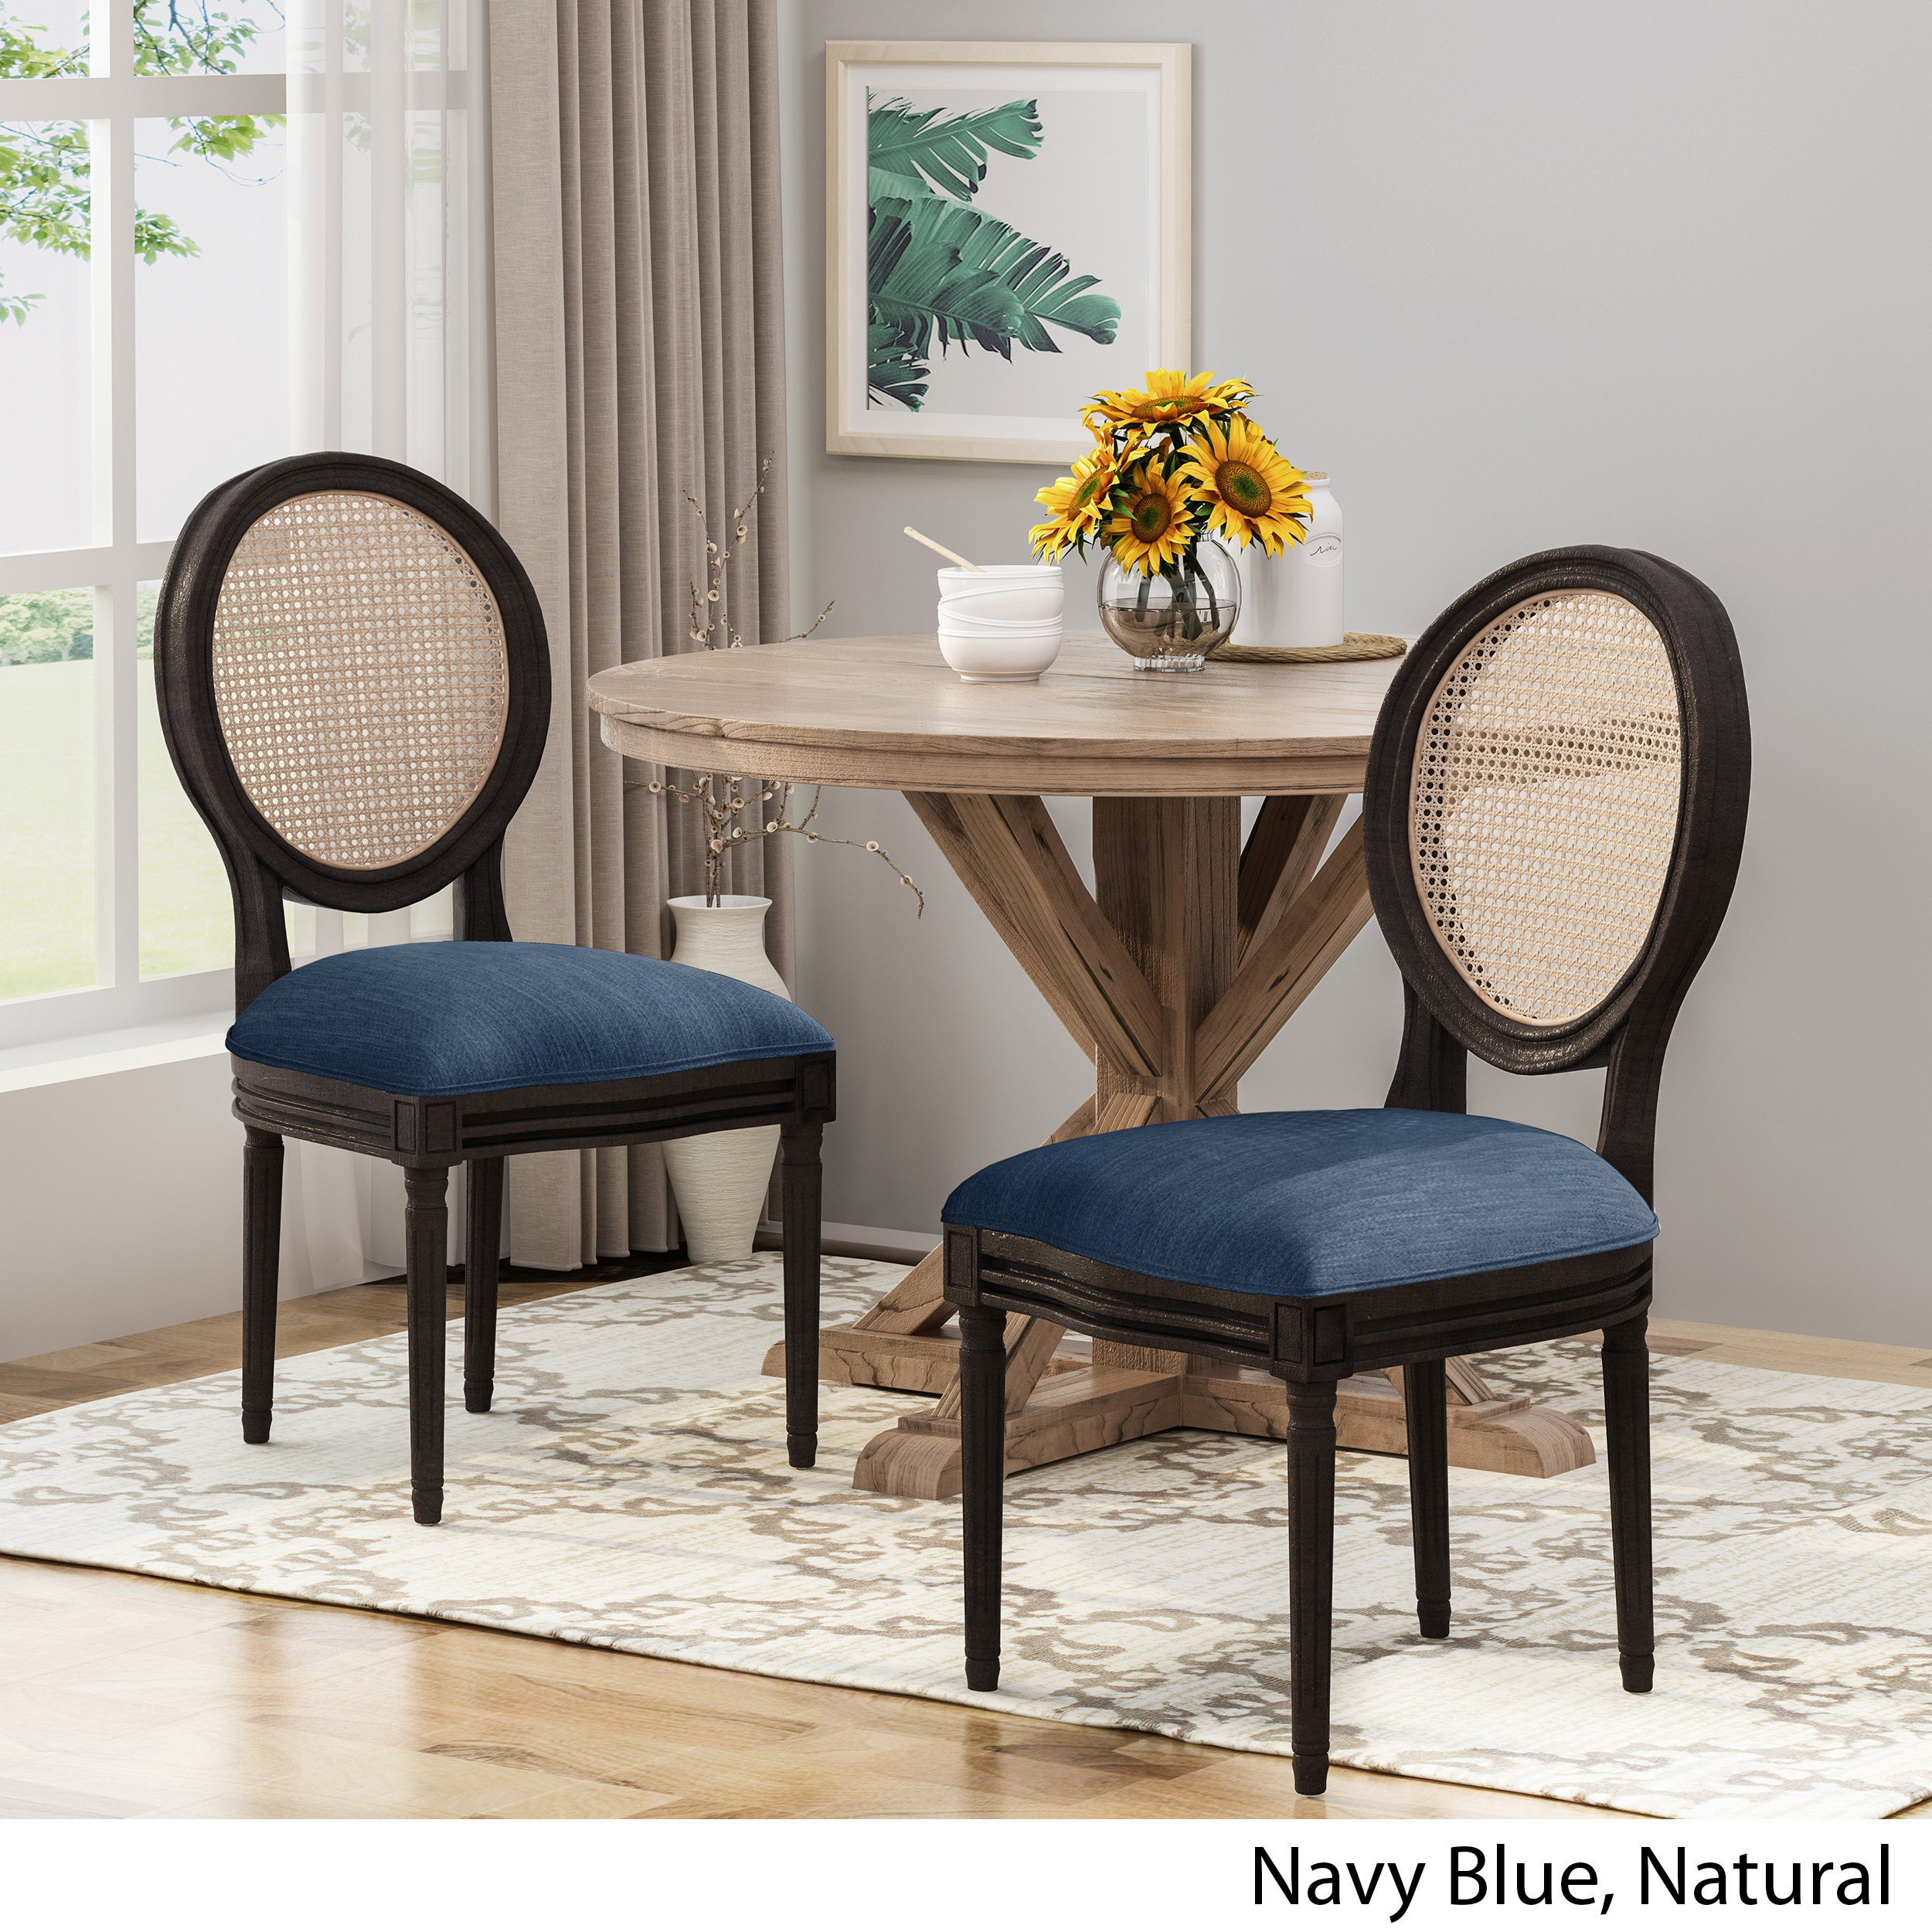 Laney Wooden Dining Chairs With Beige Cushions Set Of 2 Navy Blue And Natural Walmart Com Walmart Com